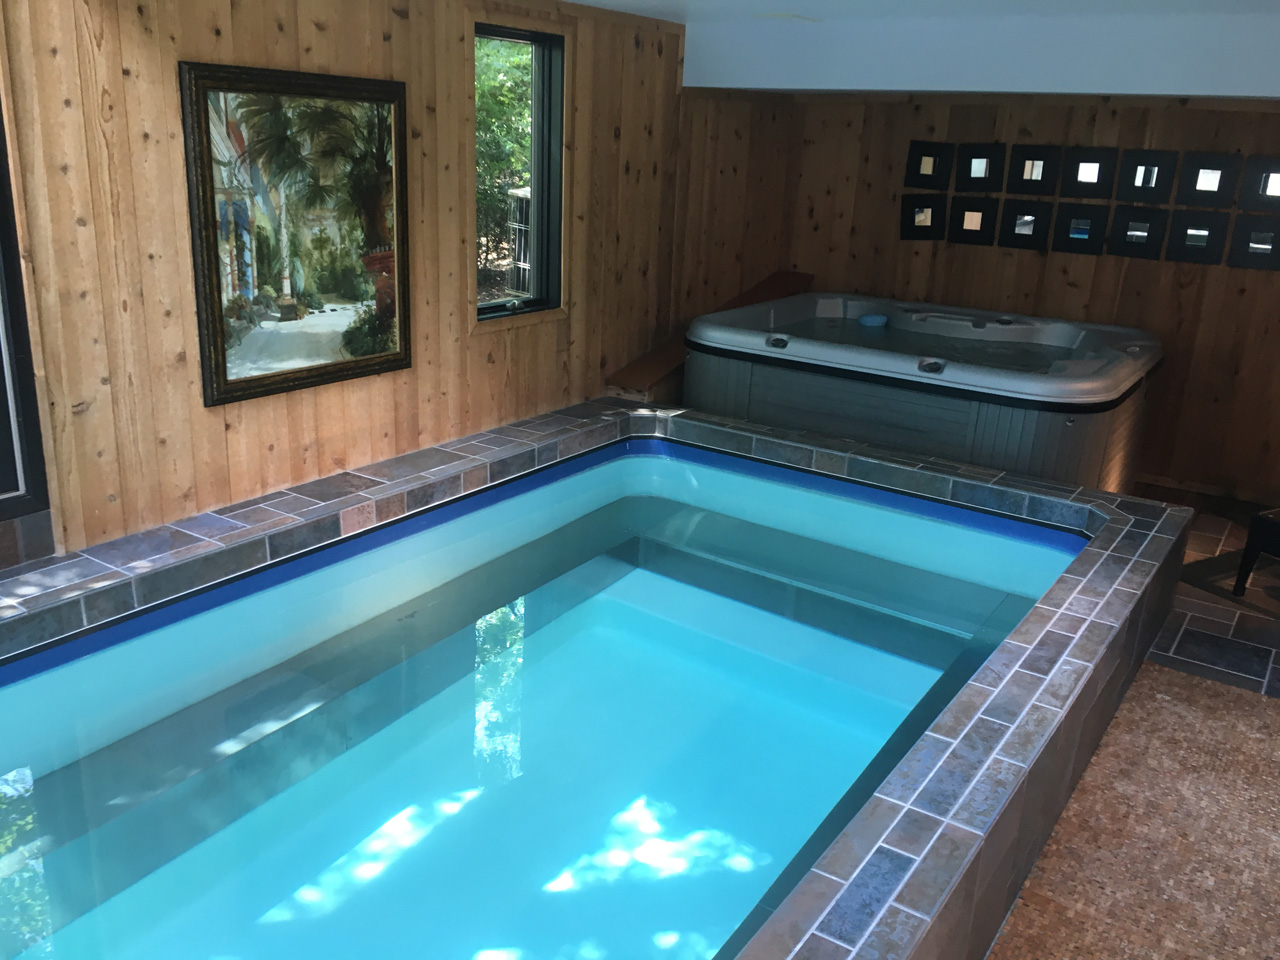 The endless pool in the pool & hot tub room